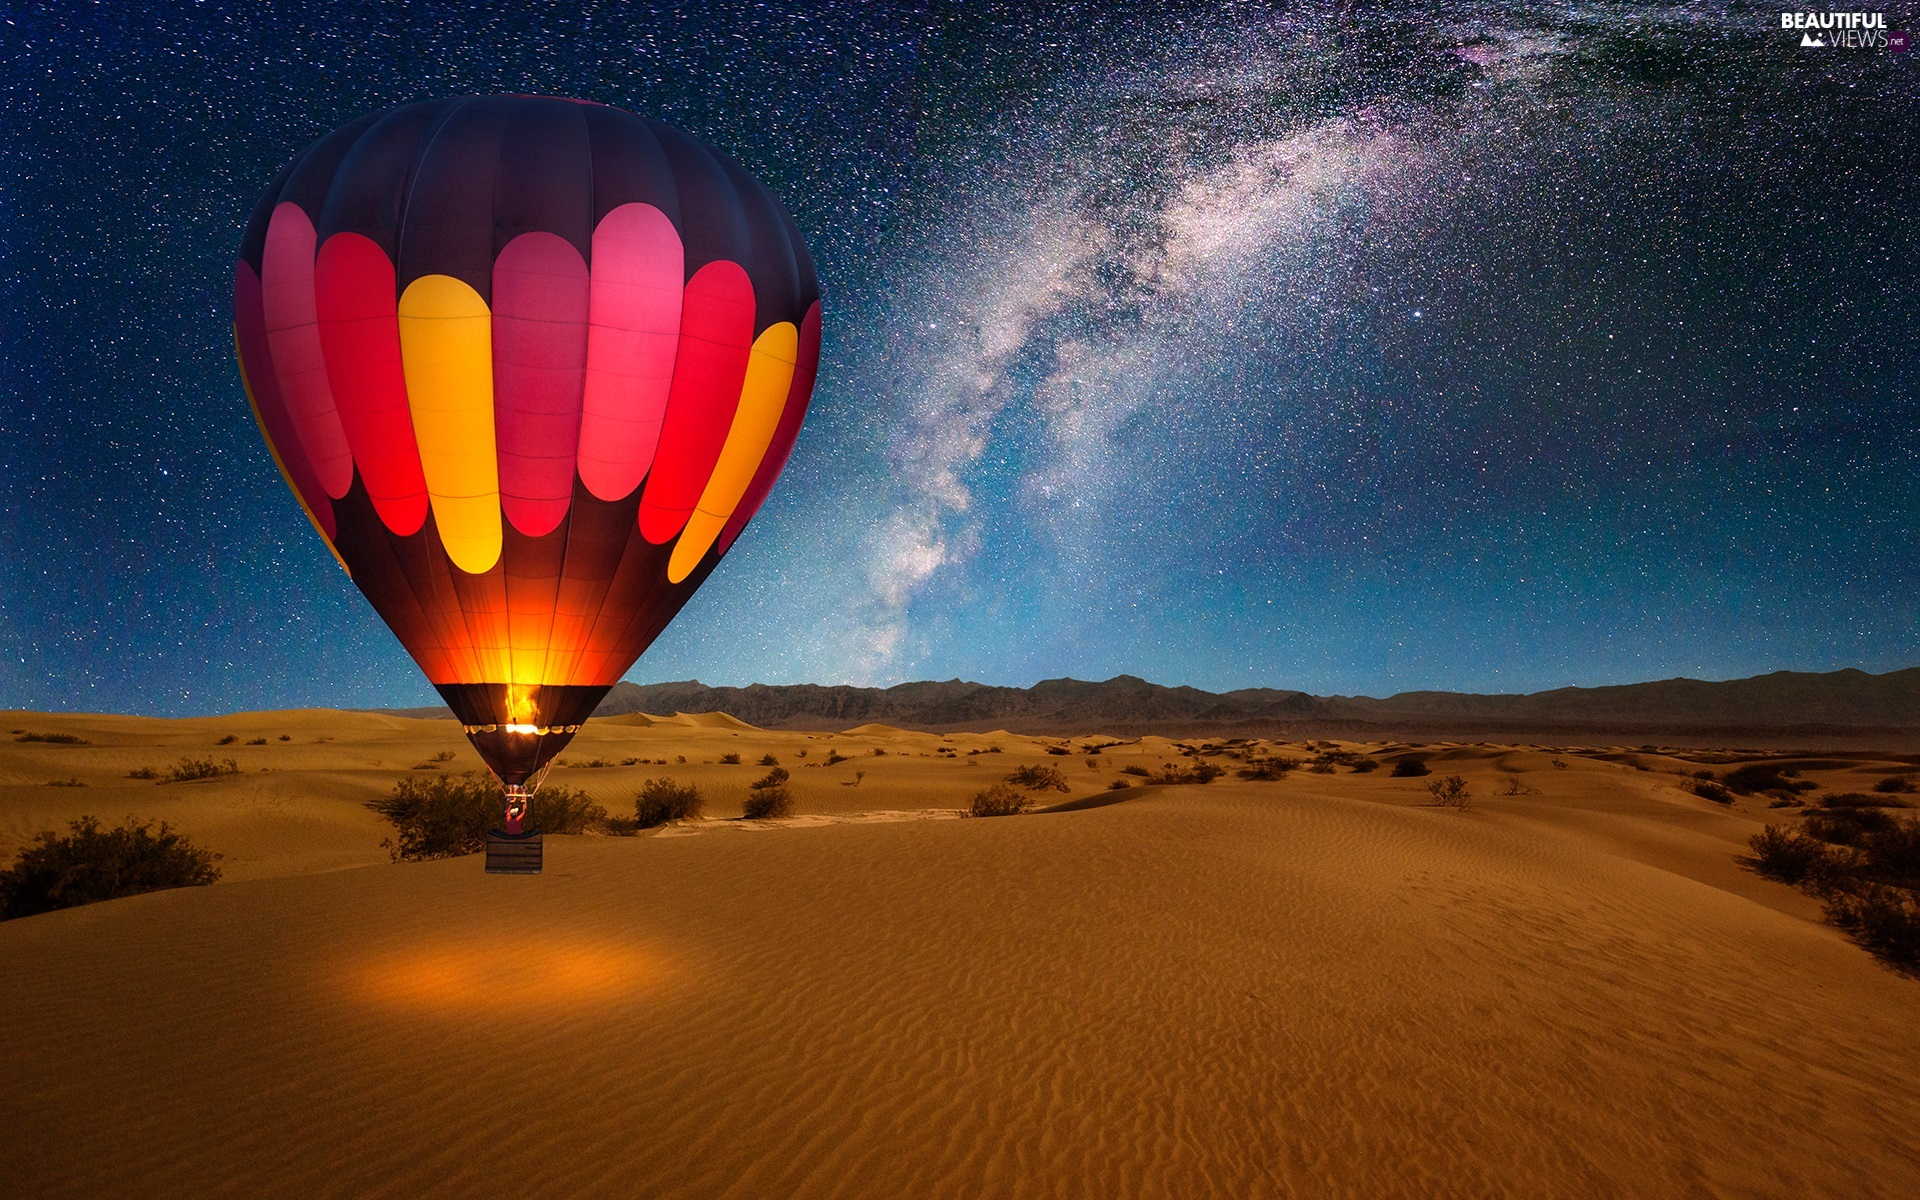 Night, Desert, Balloon, star